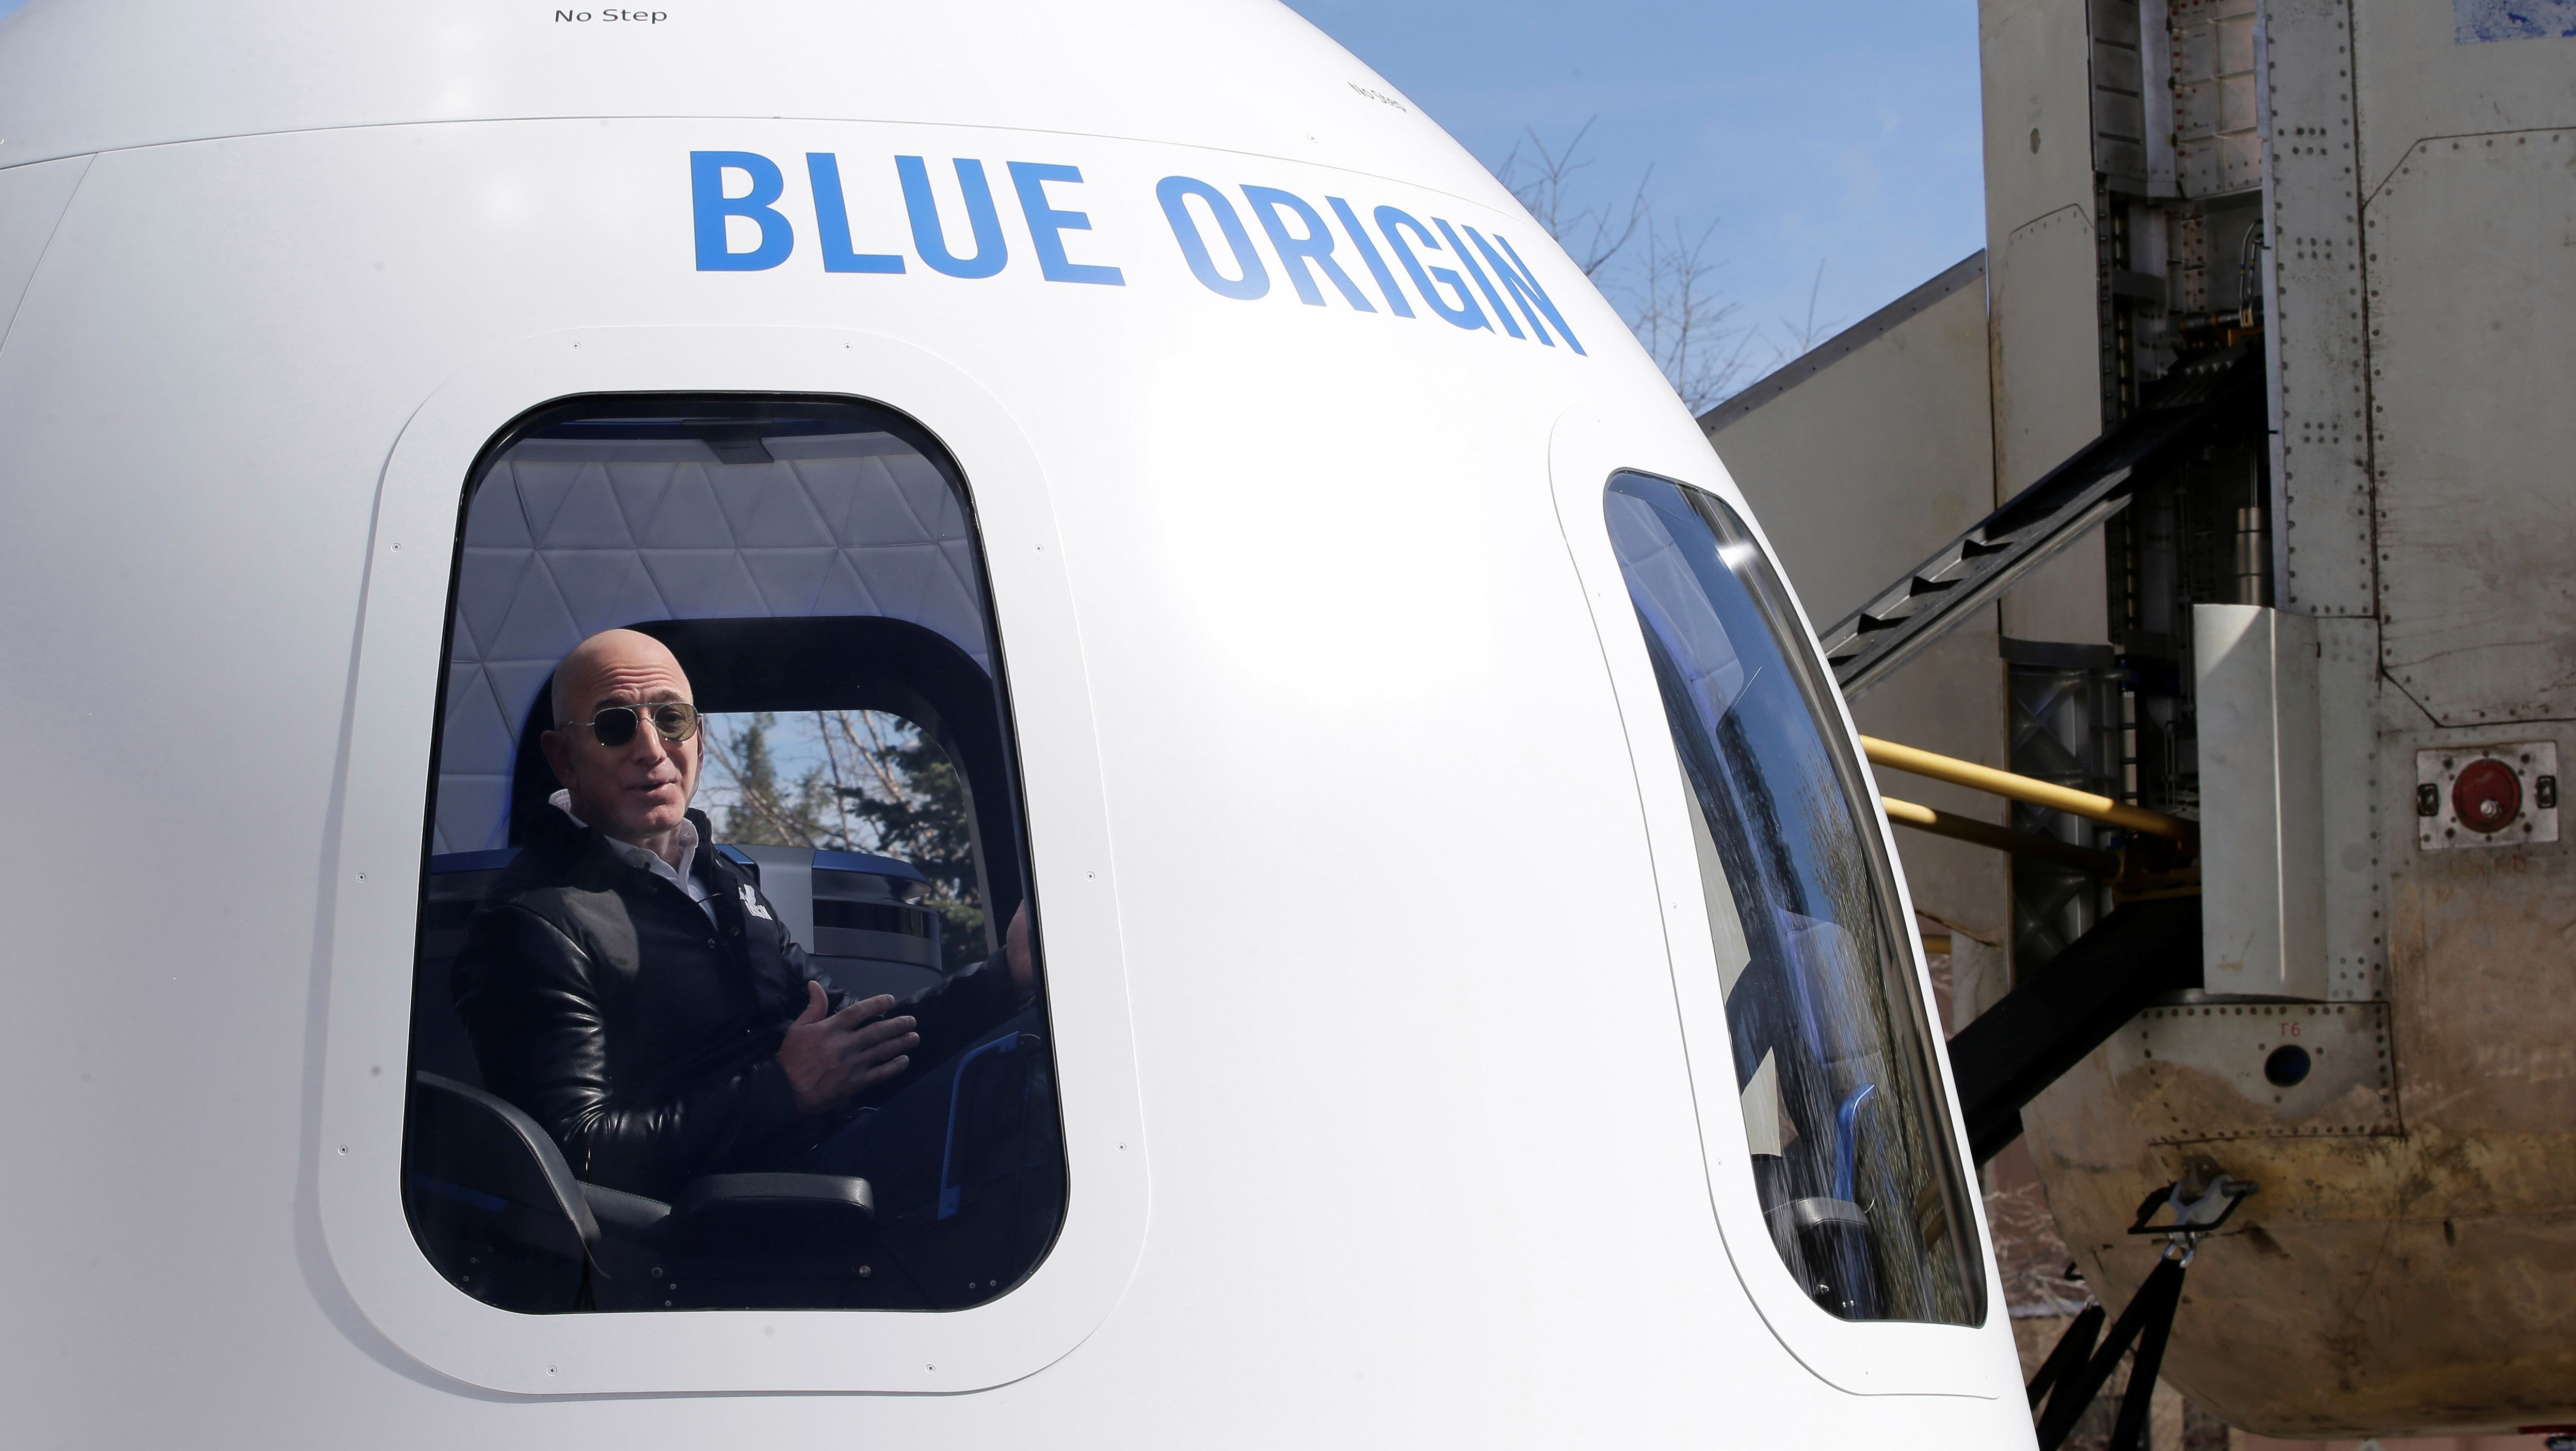 Amazon and Blue Origin founder Jeff Bezos addresses the media about the New Shepard rocket booster and Crew Capsule mockup at the 33rd Space Symposium in Colorado Springs, Colorado, United States April 5, 2017.  REUTERS/Isaiah J. Downing - RC1AE1C5E140